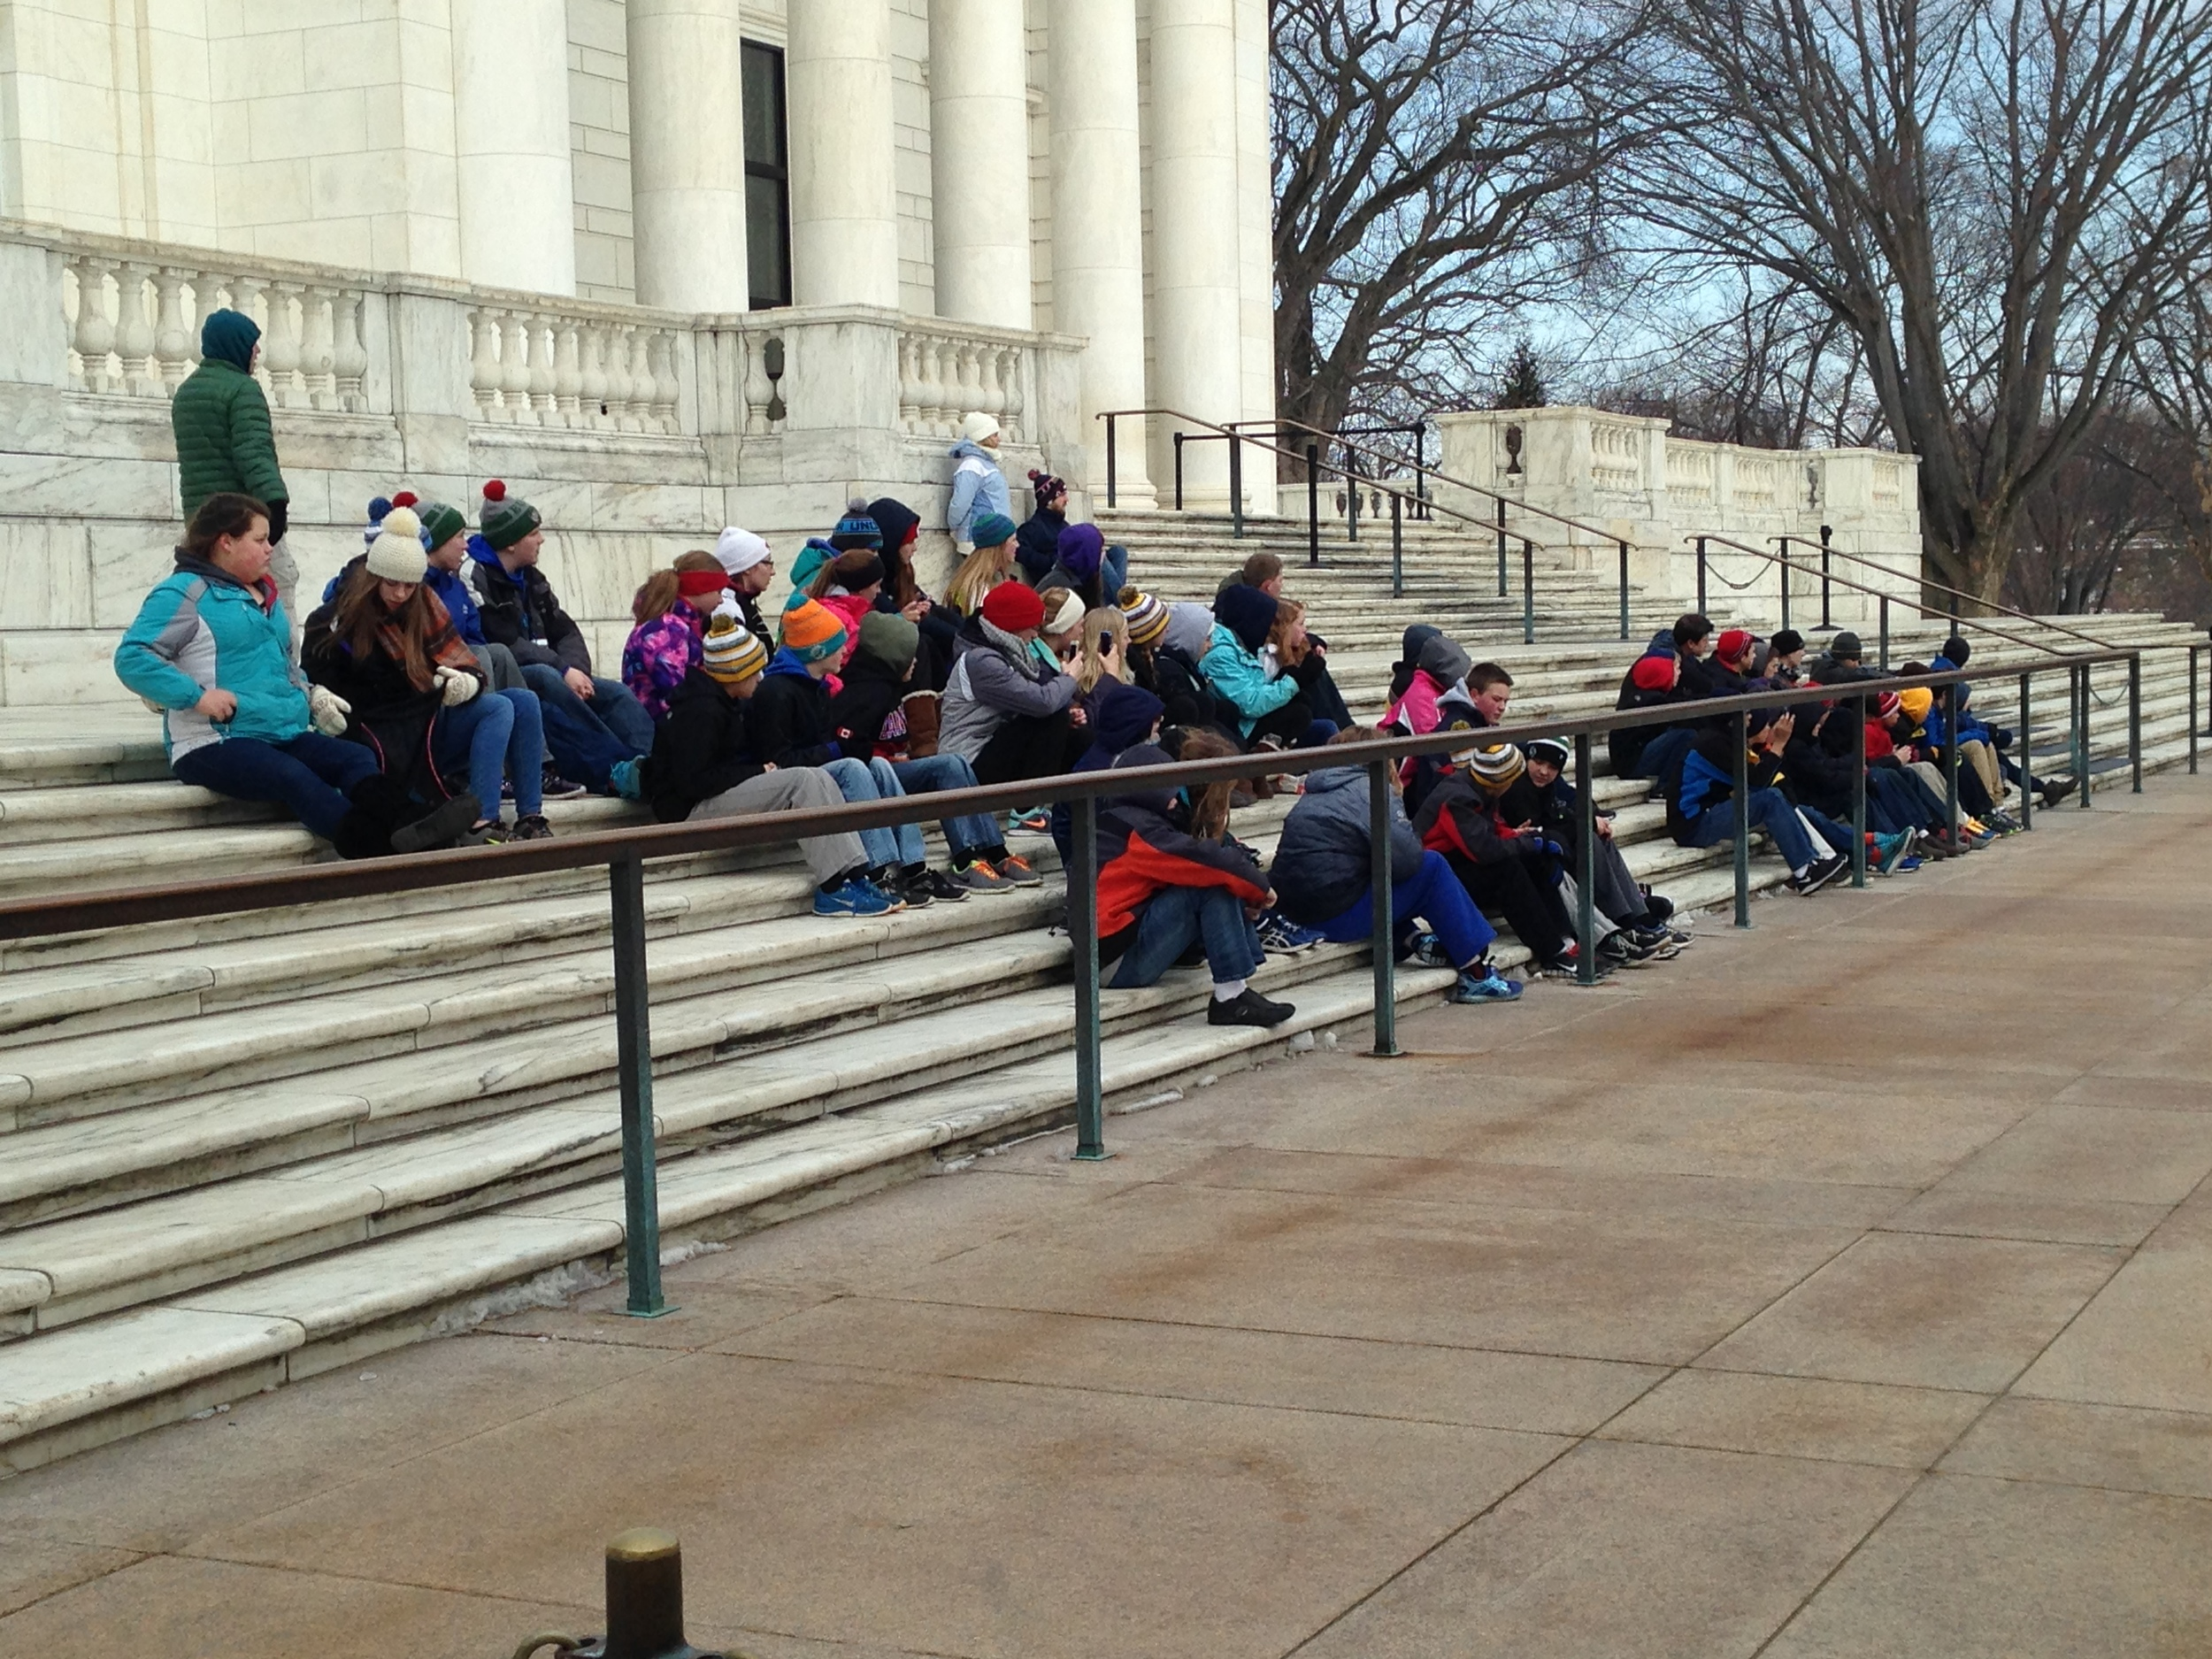 The kids get in position to watch the changing of the guard.